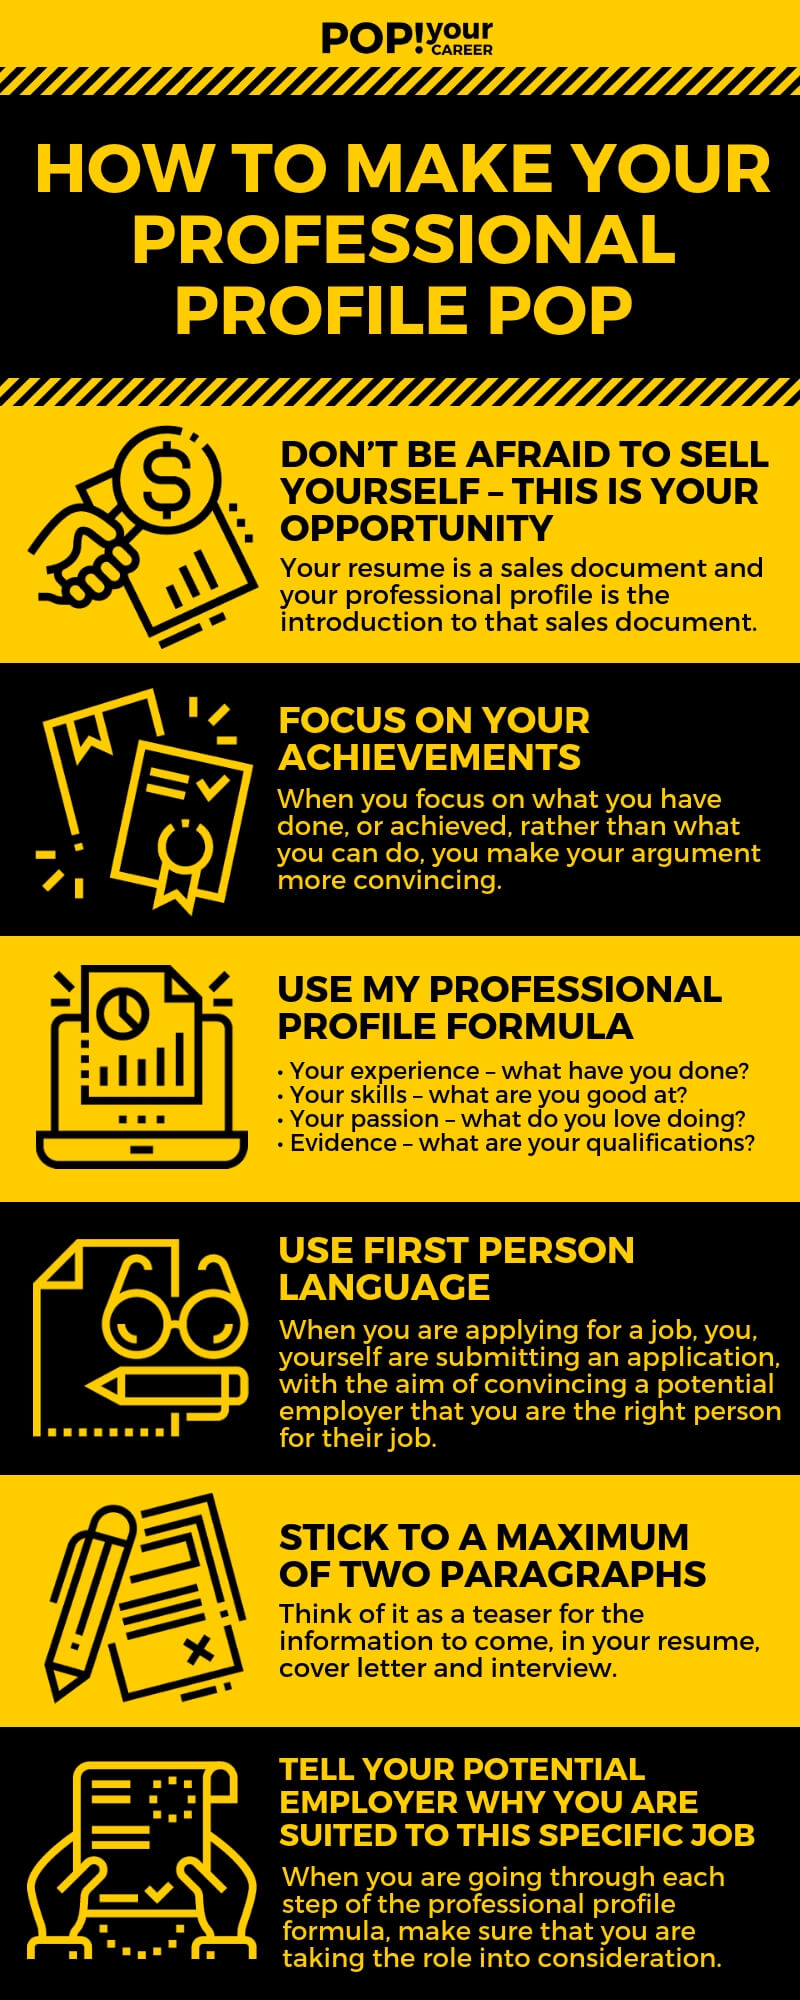 How to Make Your Professional Profile Pop